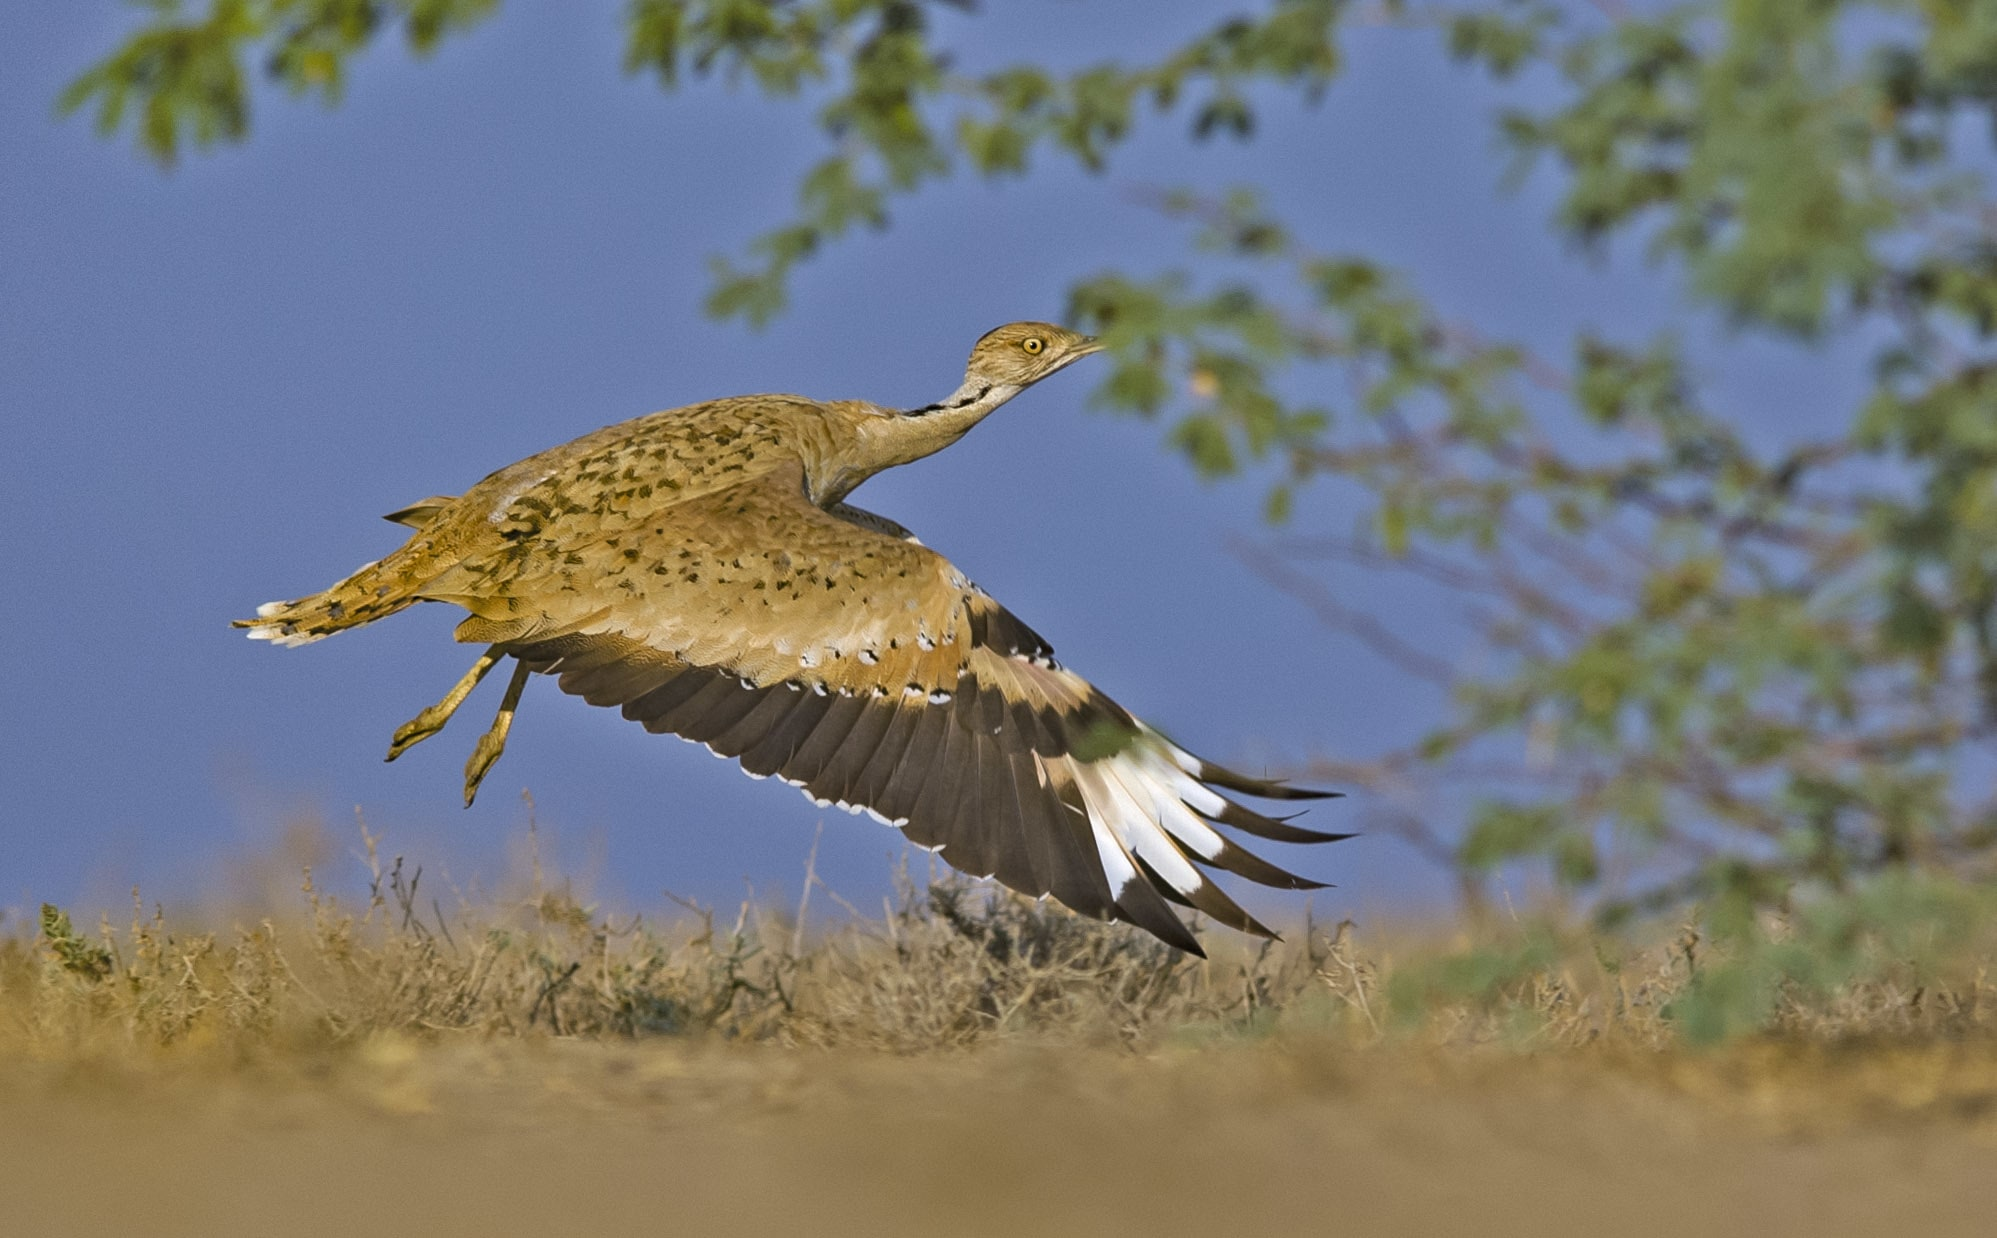 Though the MacQueen's bustard belongs to a family of the heaviest flying birds in the world, once it has settled into a habitat, it flies little, and prefers to walk or run around. Photo: Dhritiman Mukherjee